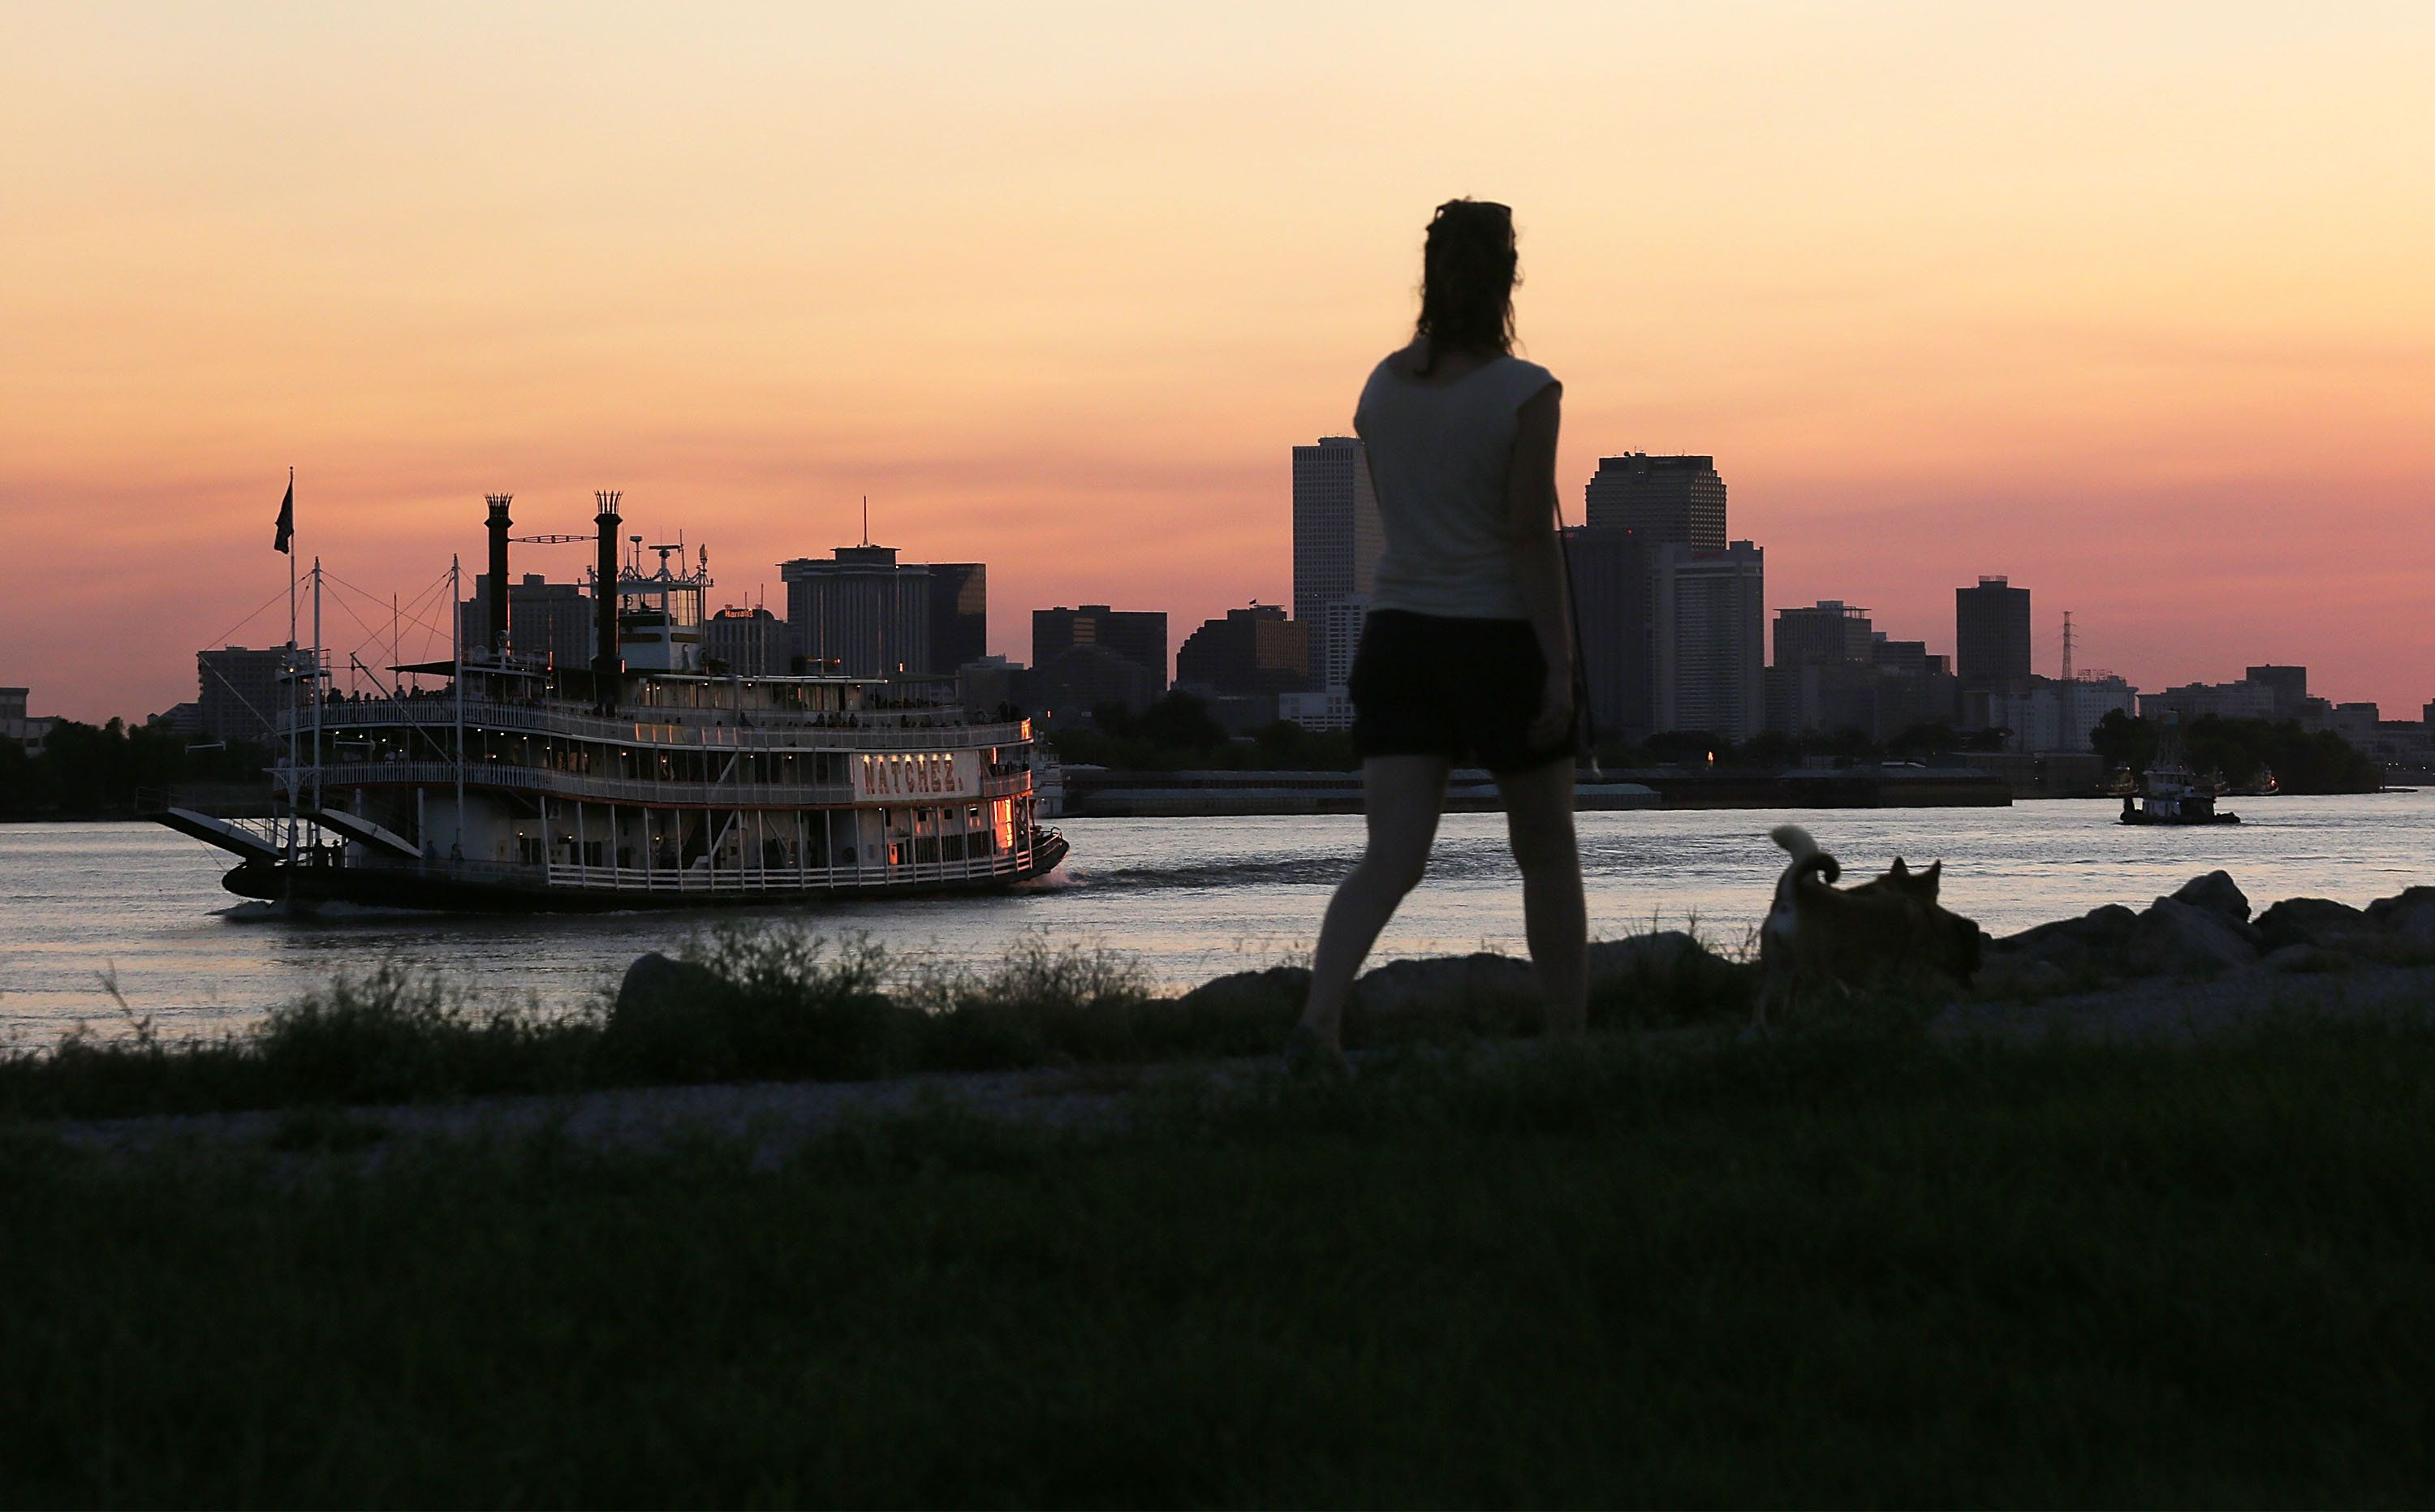 NEW ORLEANS, LA - AUGUST 26:  A woman walks atop an earthen levee on the Mississippi River in the Lower Ninth Ward as the Steamboat Natchez passes on August 26, 2015 in New Orleans, Louisiana.  New Orleans is ringed by hundred of miles of levees to protect against flooding. The tenth anniversary of Hurricane Katrina, which devastated the city partially due to levee breaches, is August 29.  (Photo by Mario Tama/Getty Images)